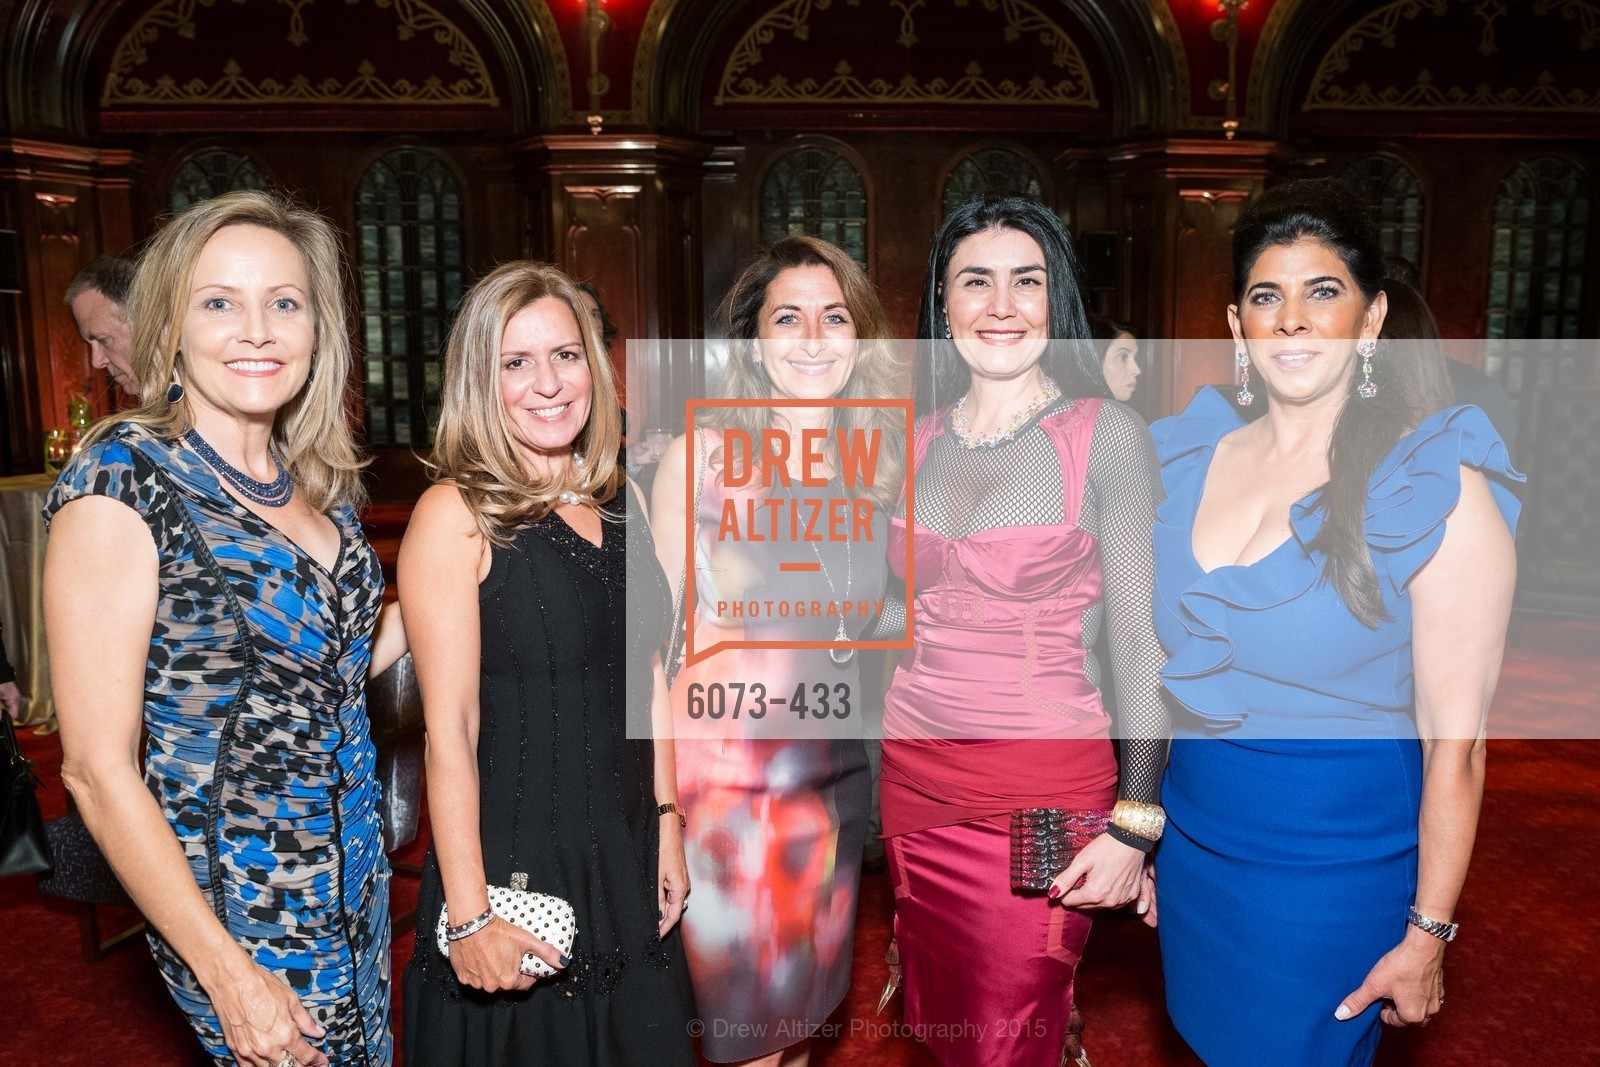 Denise Ivory, Yvette Esserman, Angela De La Housaye, Afsaneh Akhtari, Sujata Pherwani, SFMOMA Contemporary Vision Award, Regency Ballroom. 1300 Van Ness, November 3rd, 2015,Drew Altizer, Drew Altizer Photography, full-service agency, private events, San Francisco photographer, photographer california